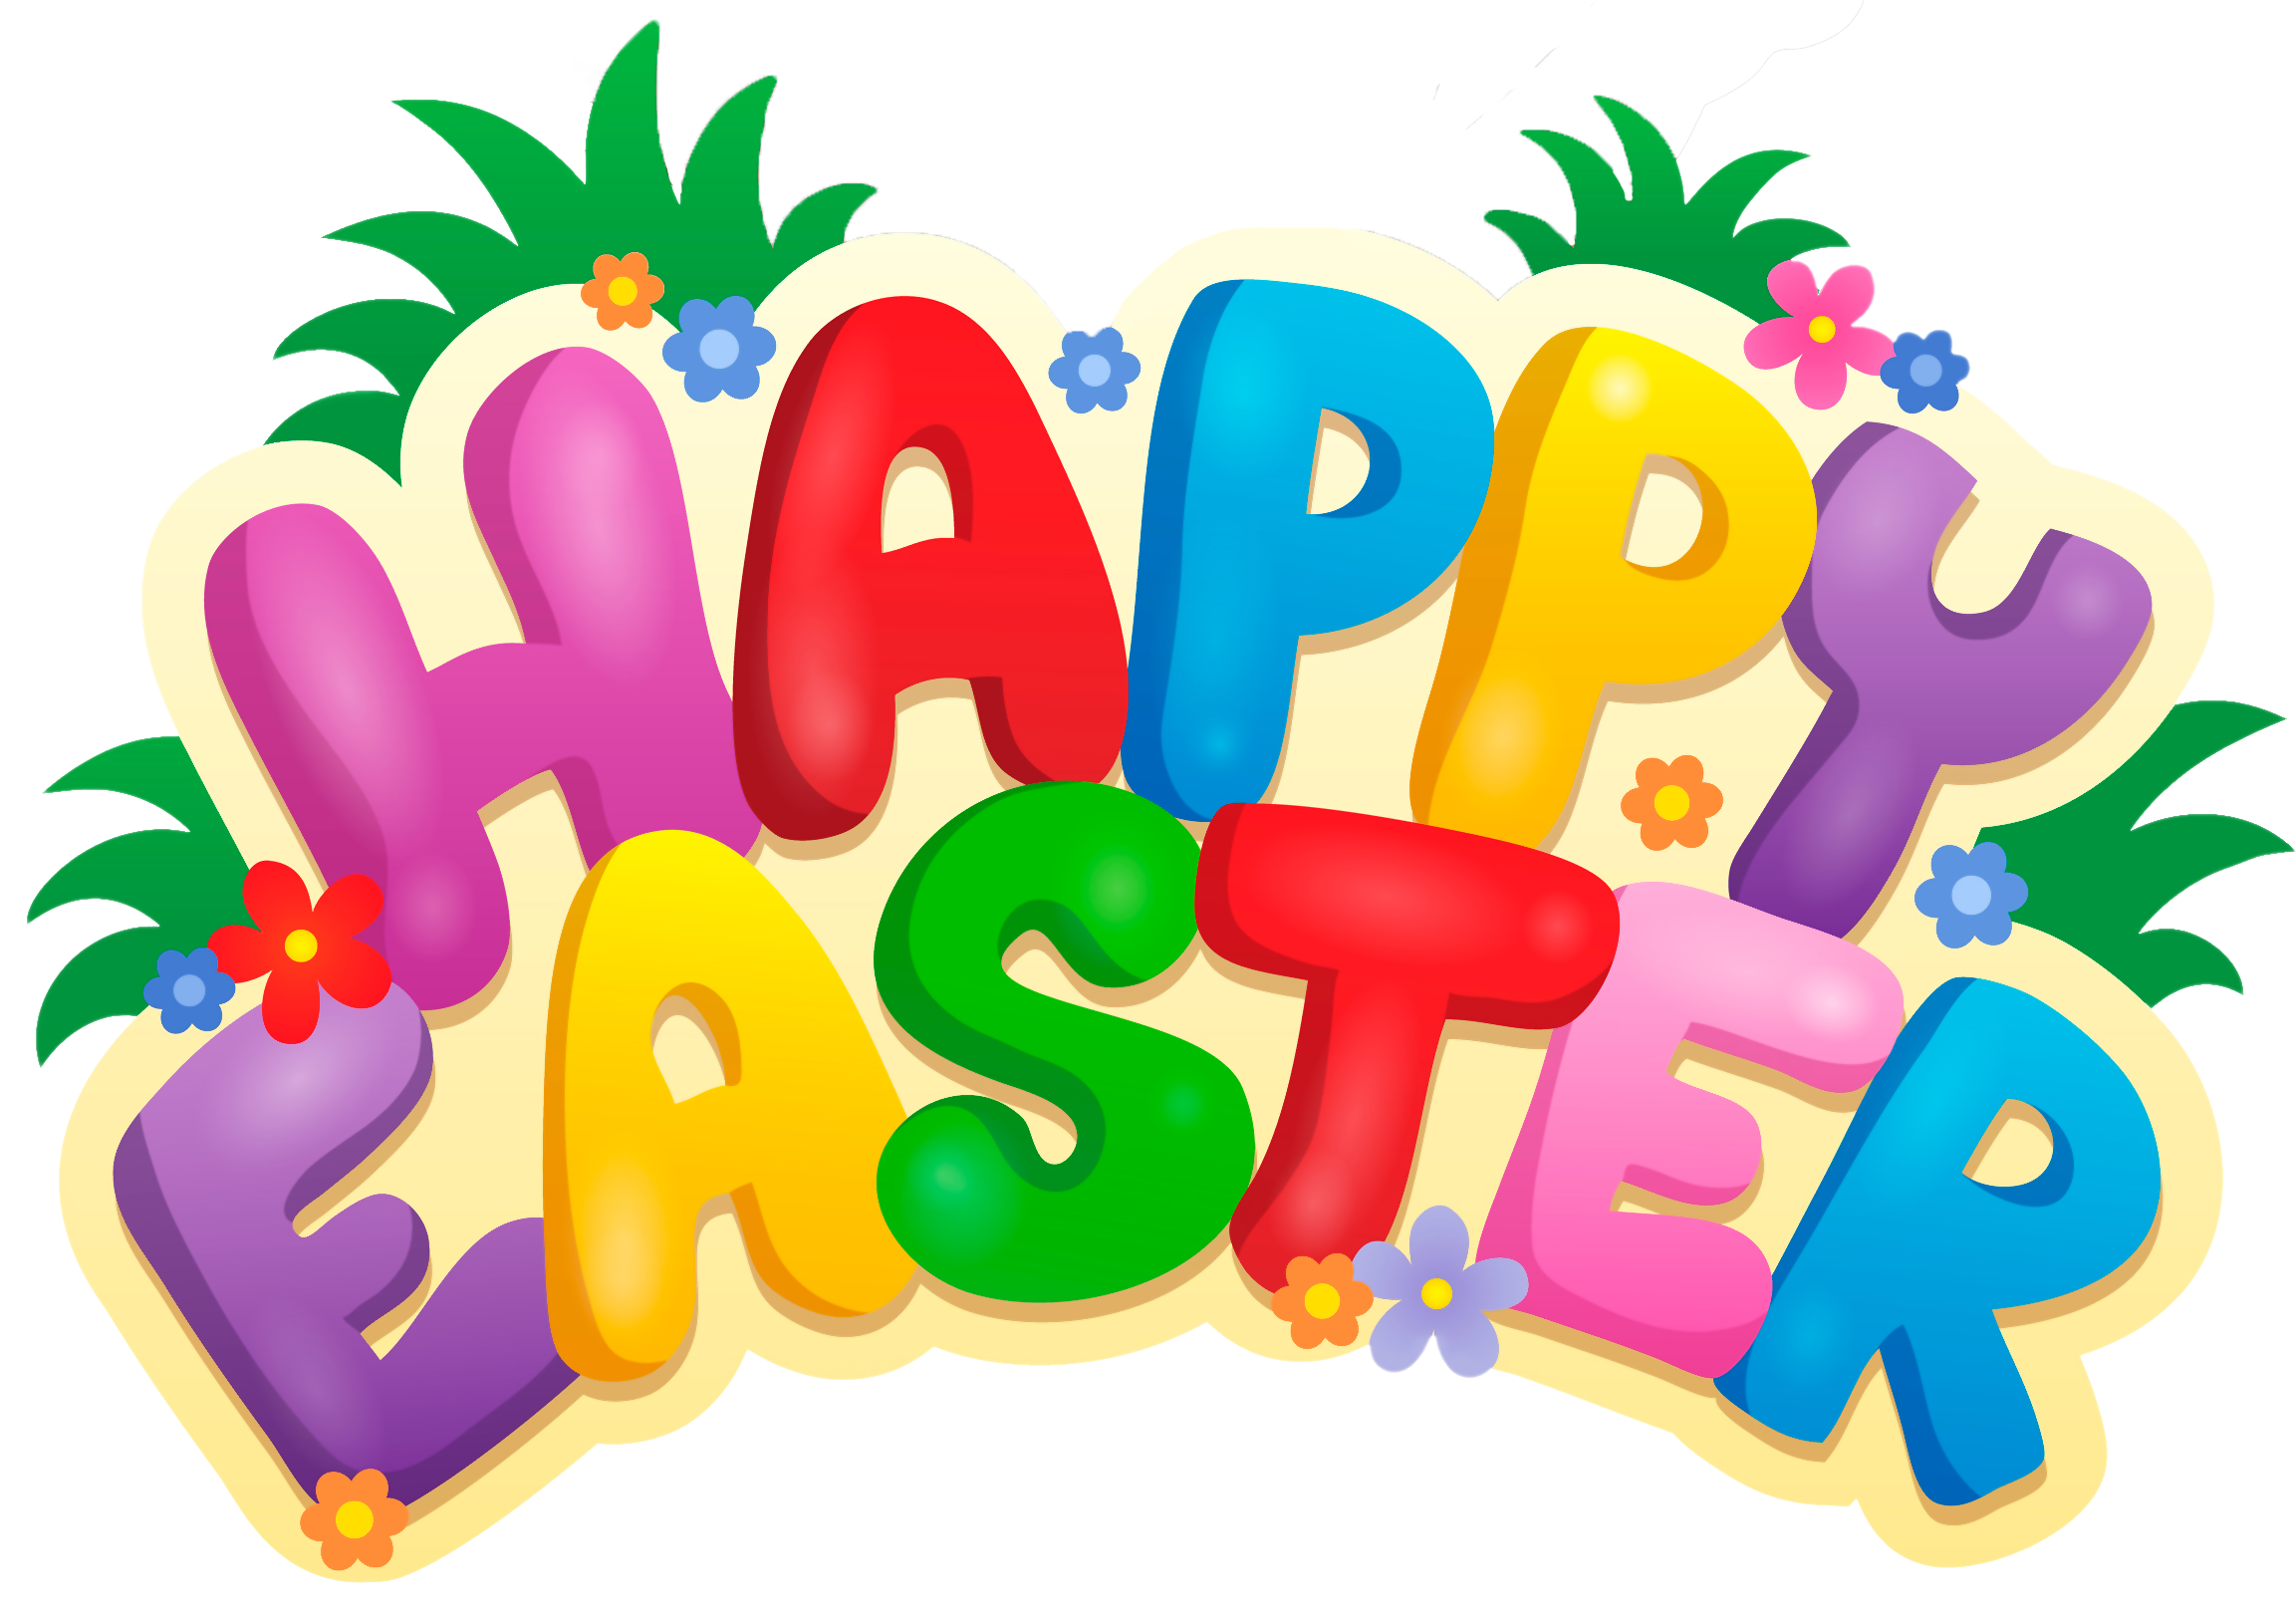 NO ECAT Bus u0026 UWF Trolley Service on Easter Sunday, April 16th. Beach  Trolleys will run on Easter Sunday from 5:00 PM to 1:00 AM. - Easter Sunday PNG